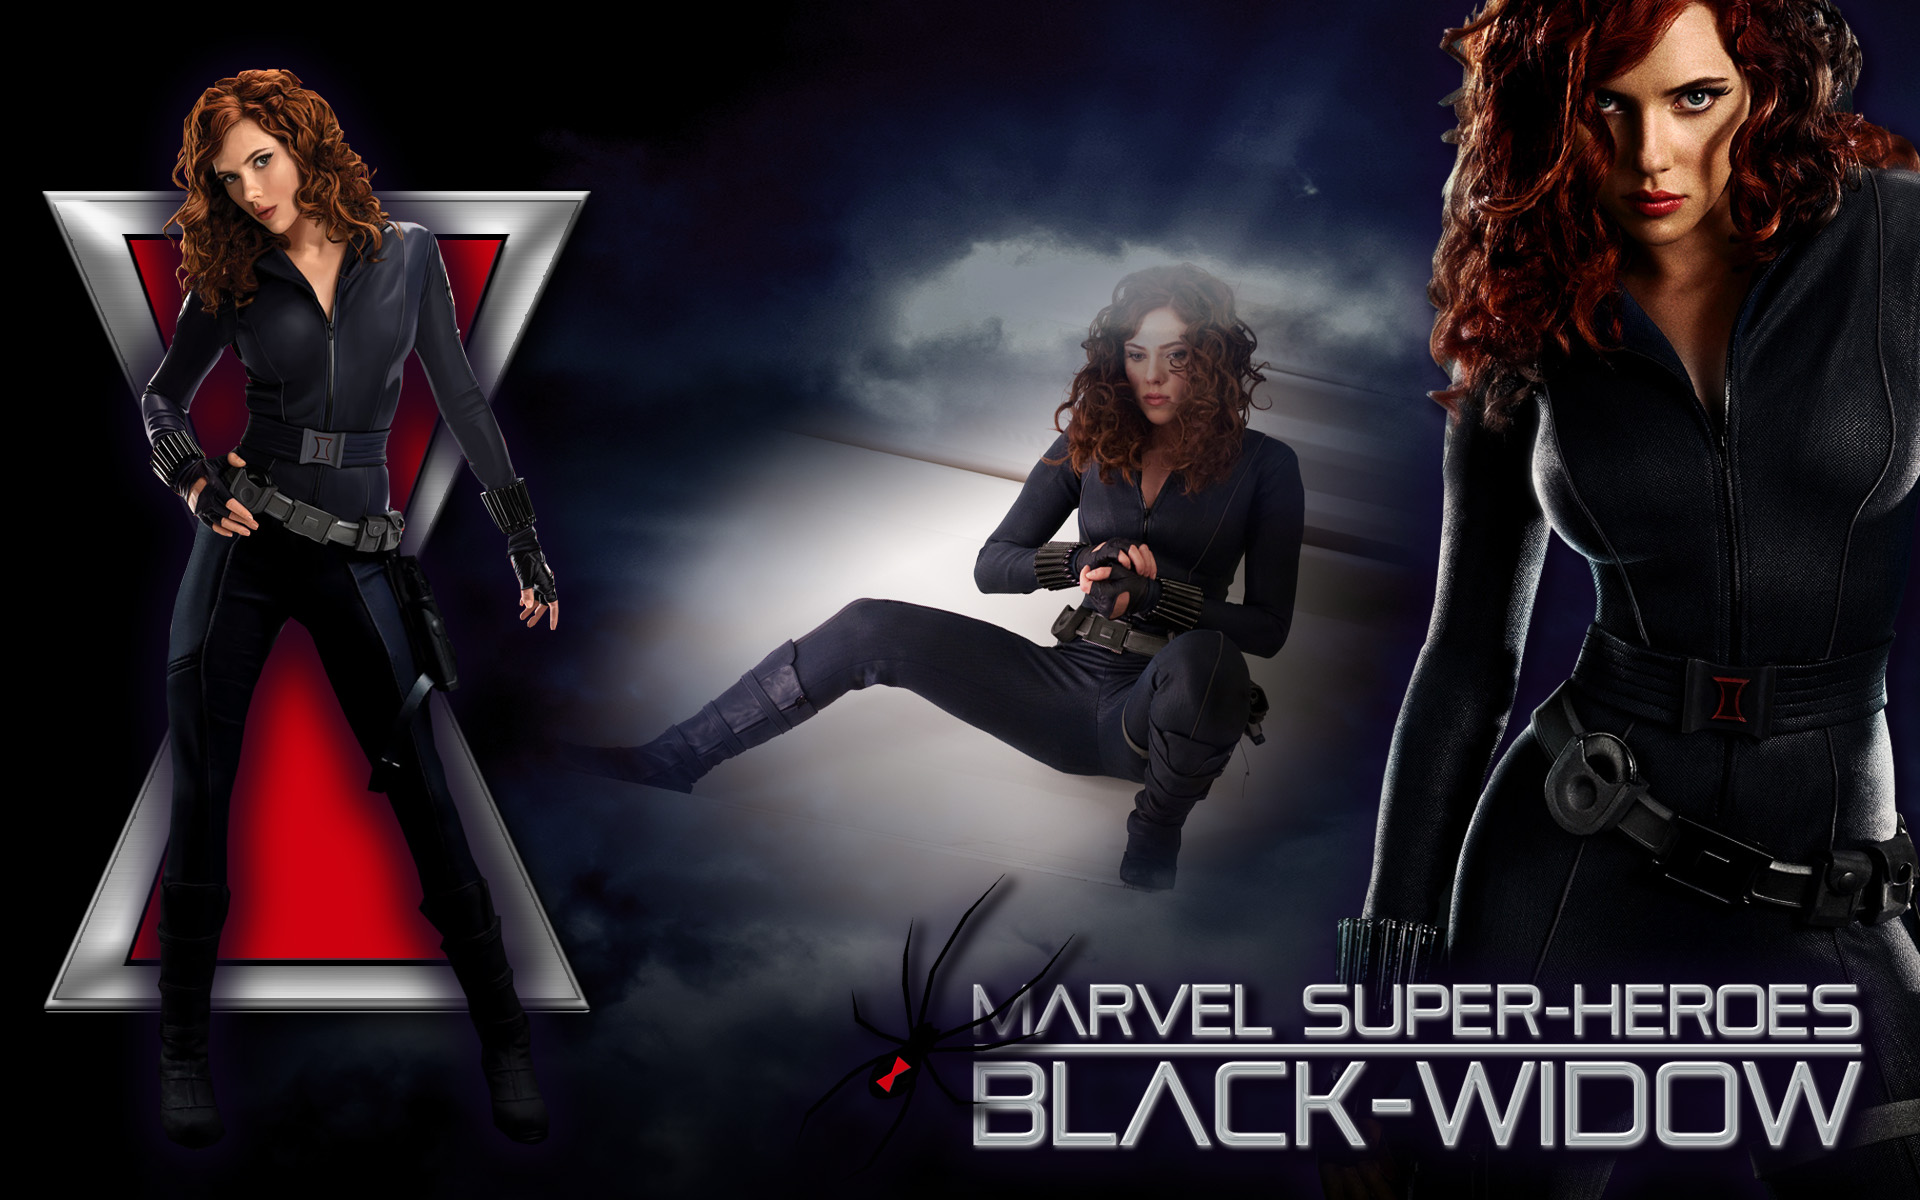 The Avenger Black Widow 22 Wallpaper HD